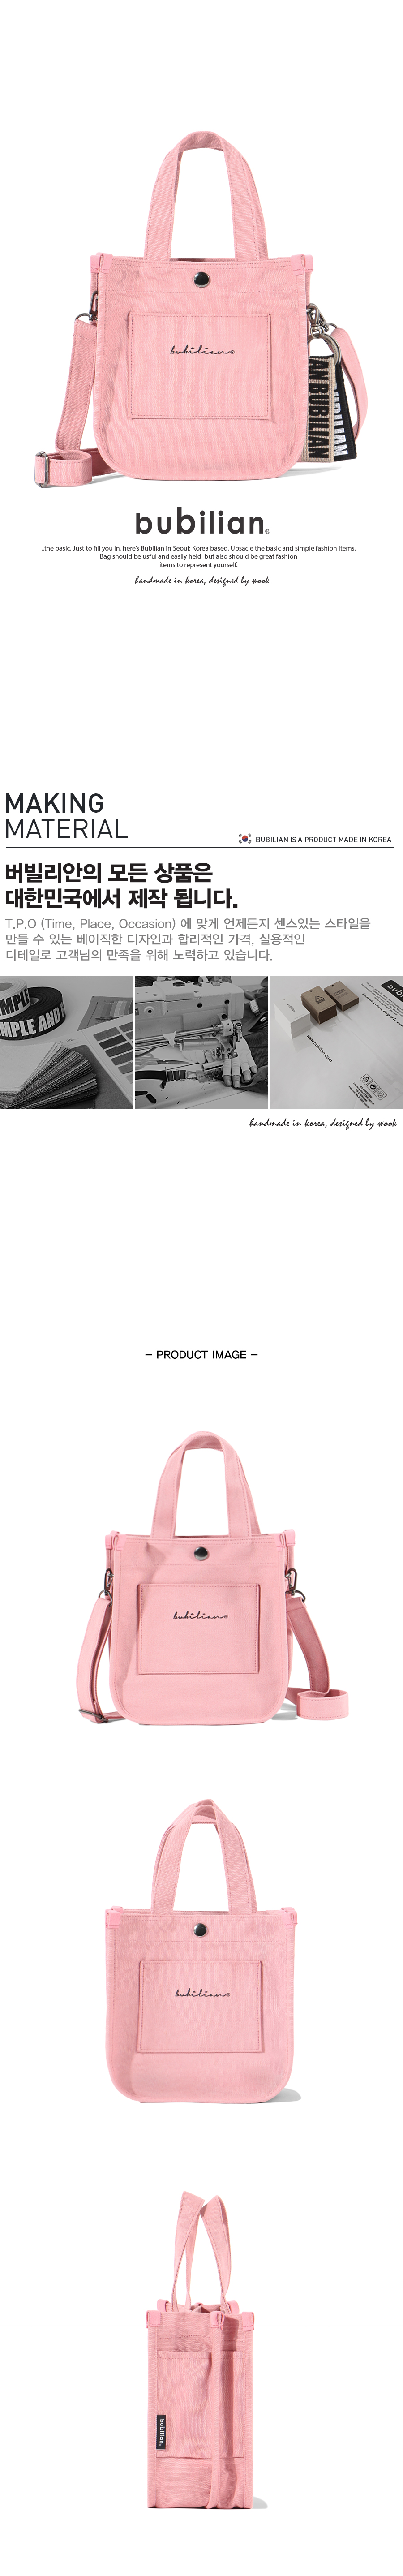 [키홀더 포함] Bubilian Accordion Mini Bag _ [PINK]